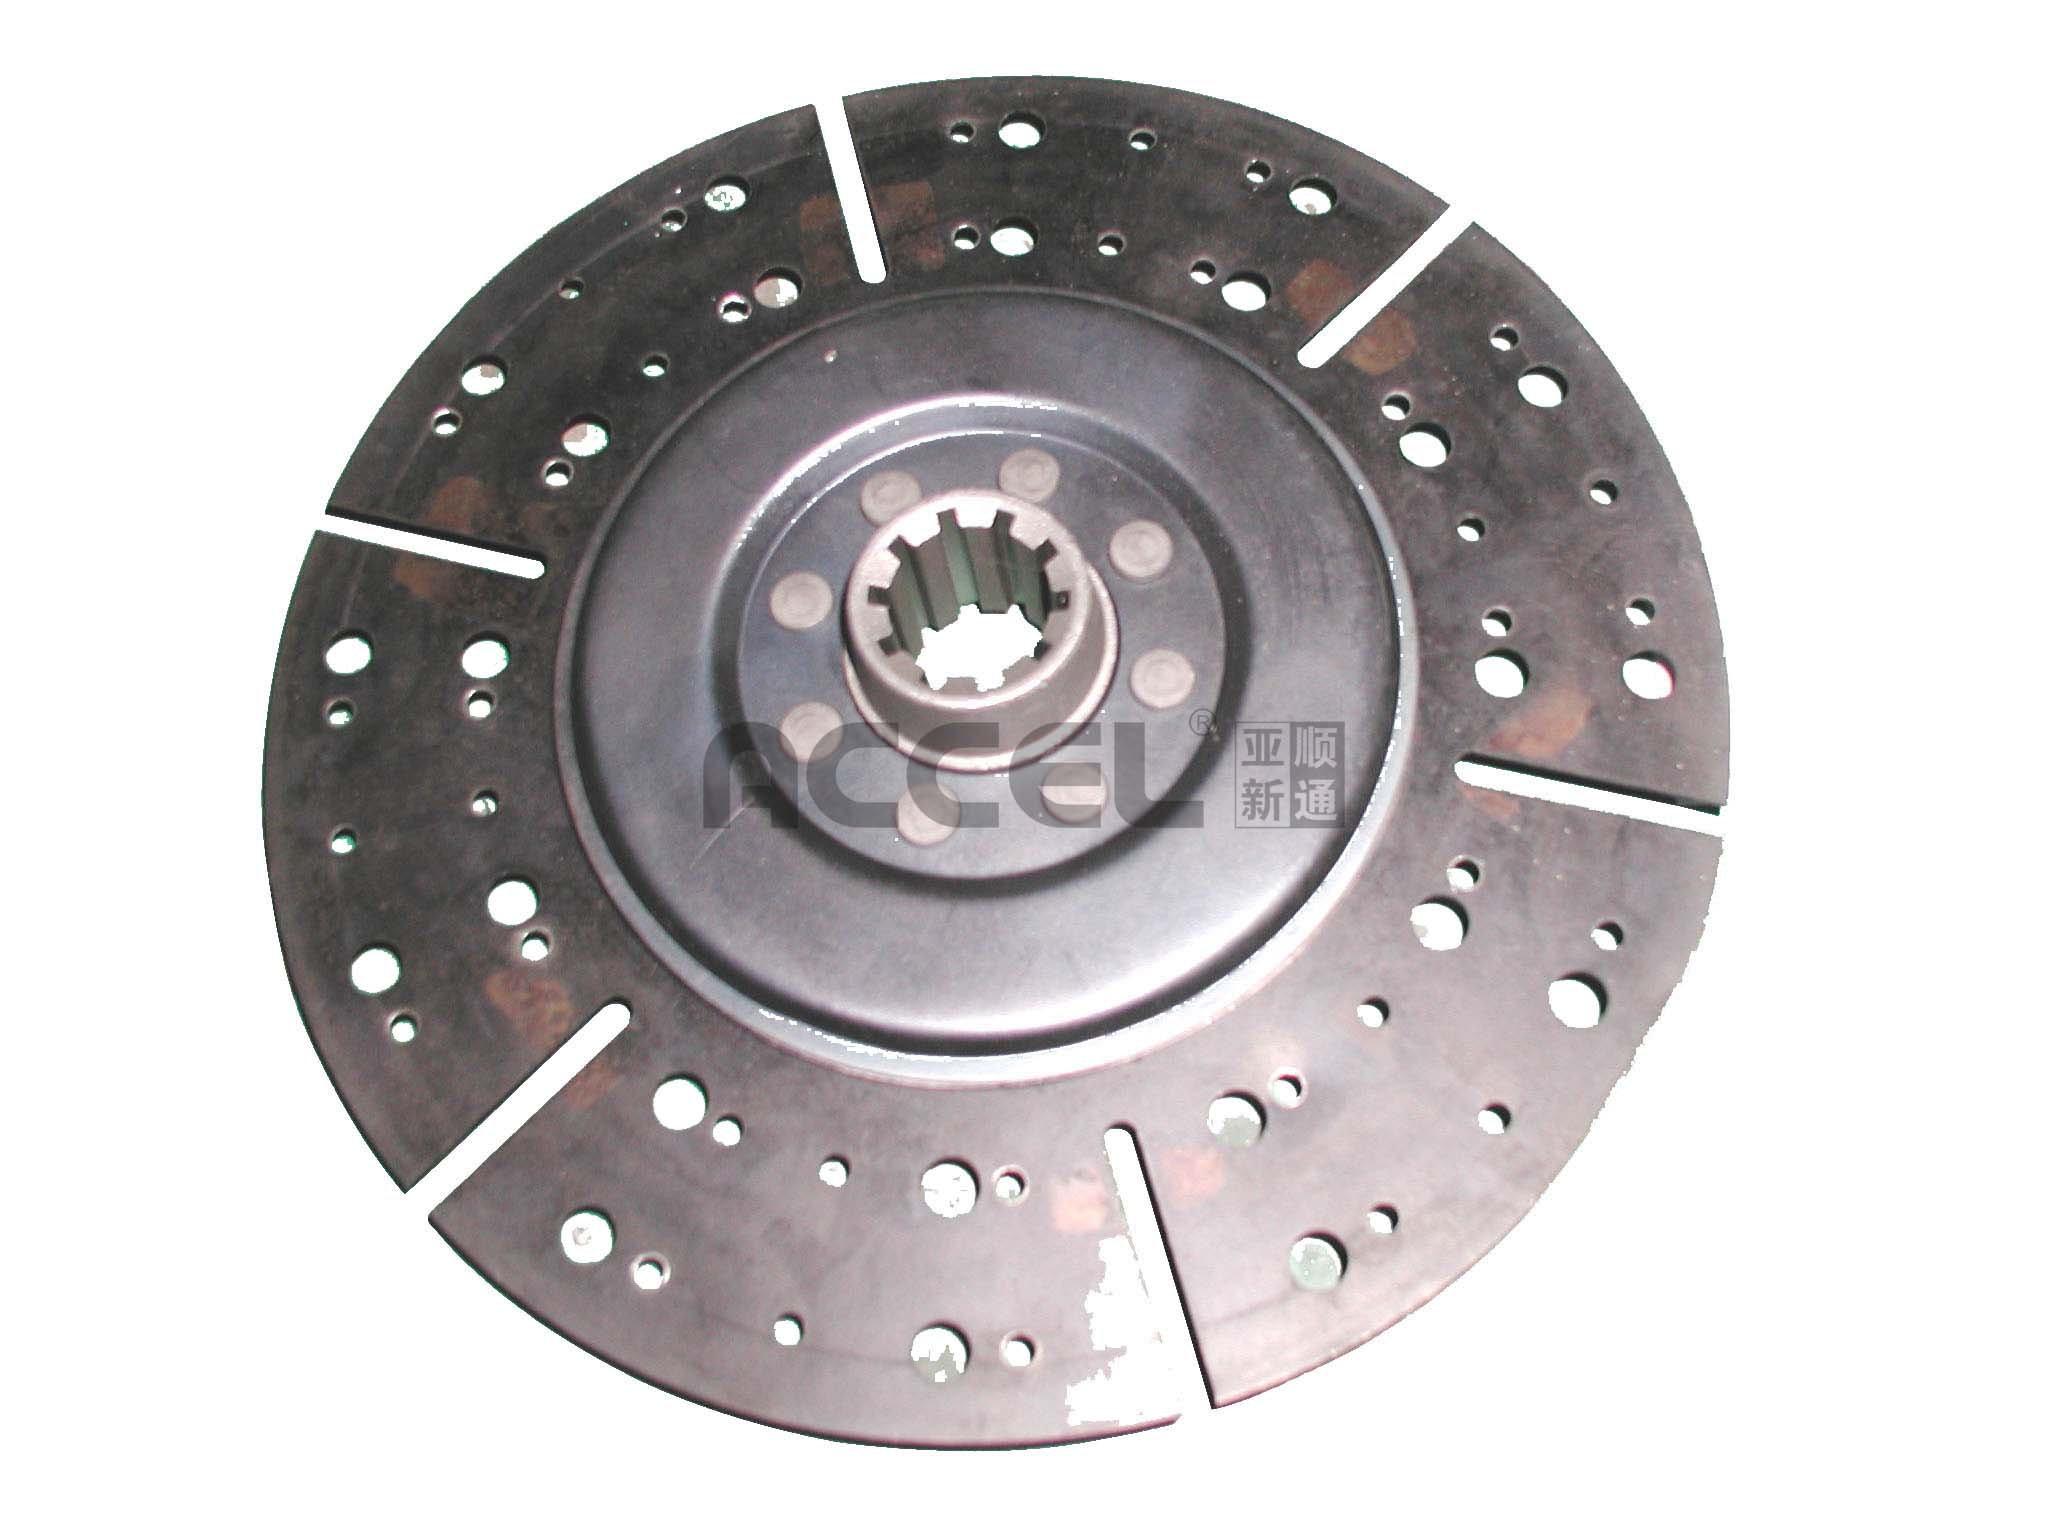 Clutch Disc/OE:007 250 1903/280*165*10*35/ABZ-021/MERCEDES BENZ/CL0732/1861 254 037